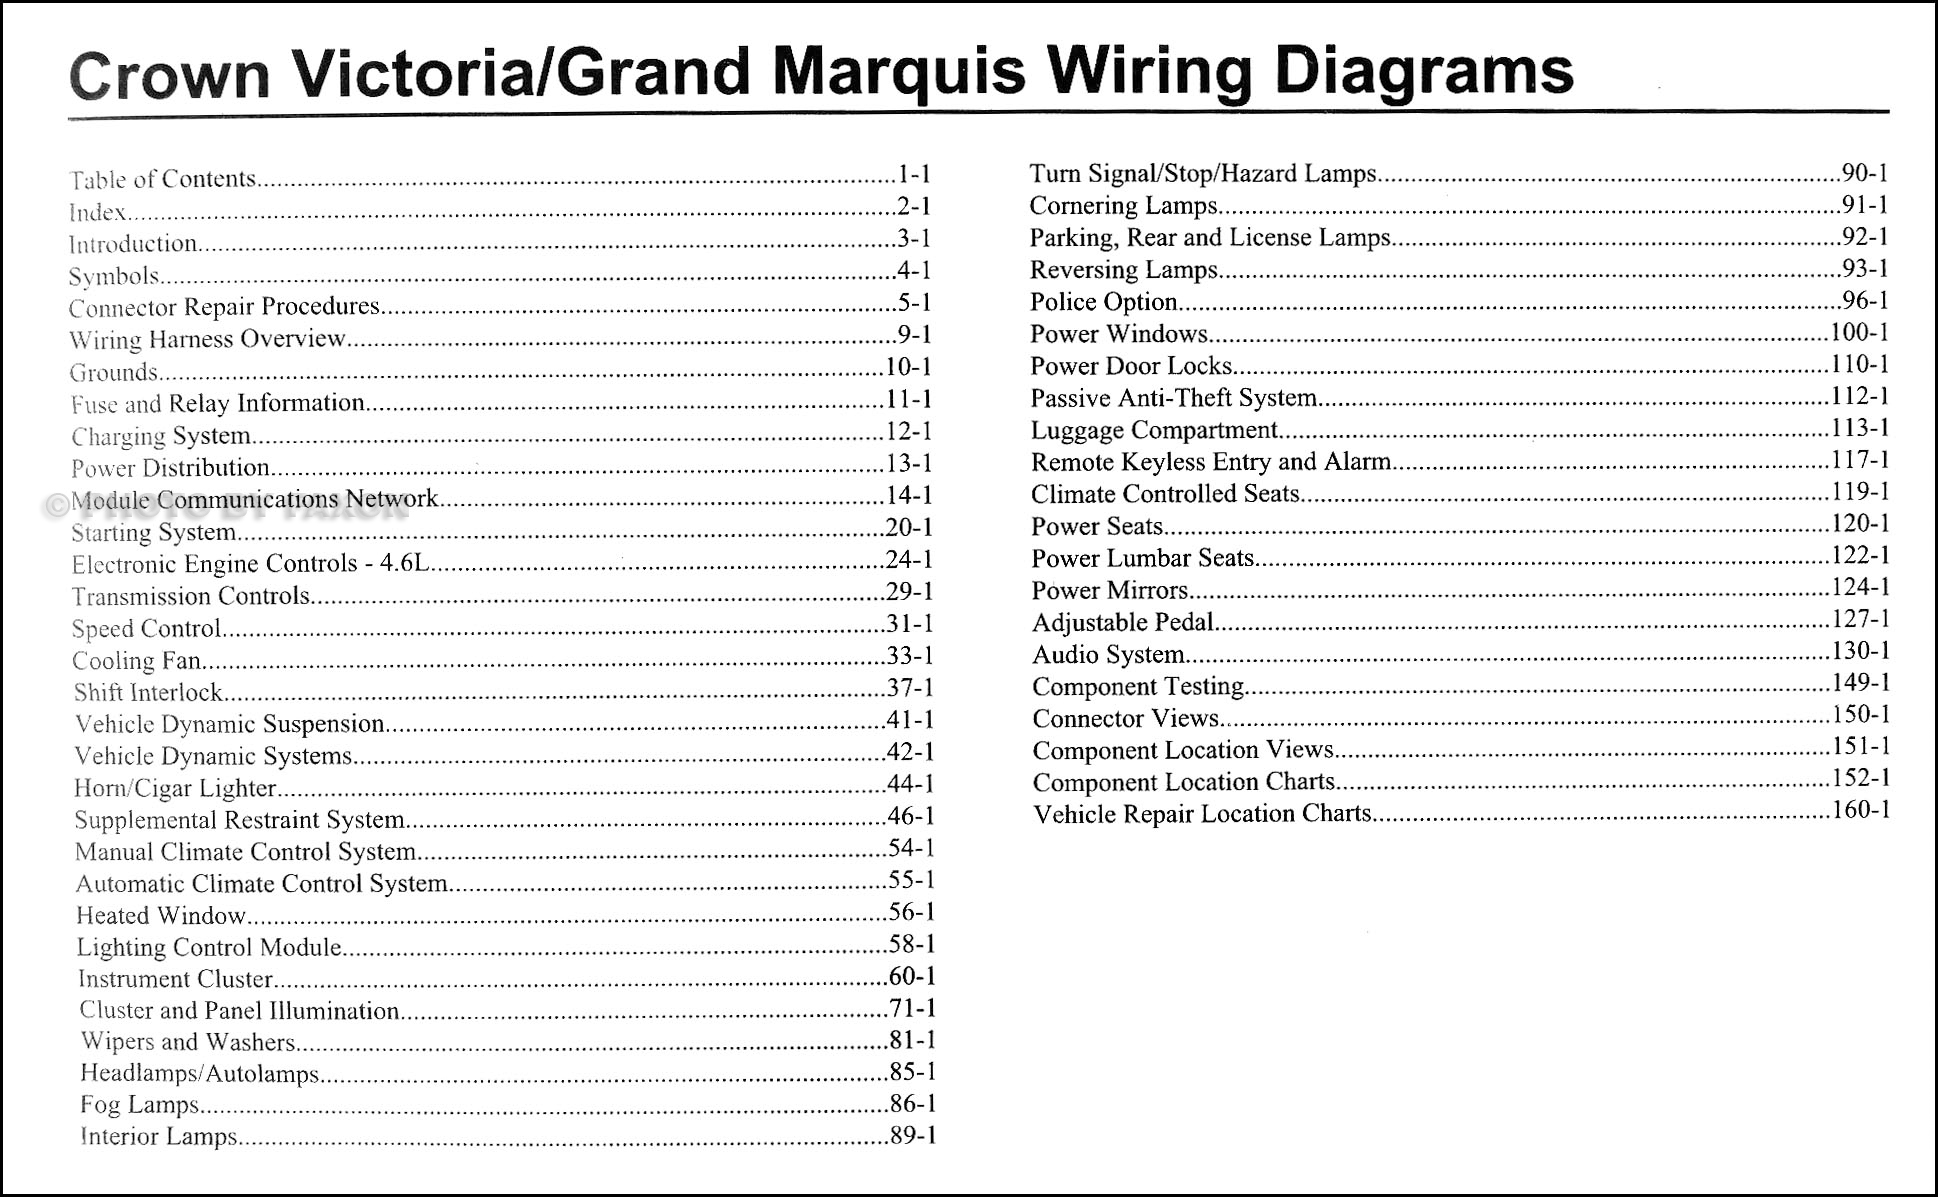 2009 Crown Victoria  U0026 Grand Marquis Original Wiring